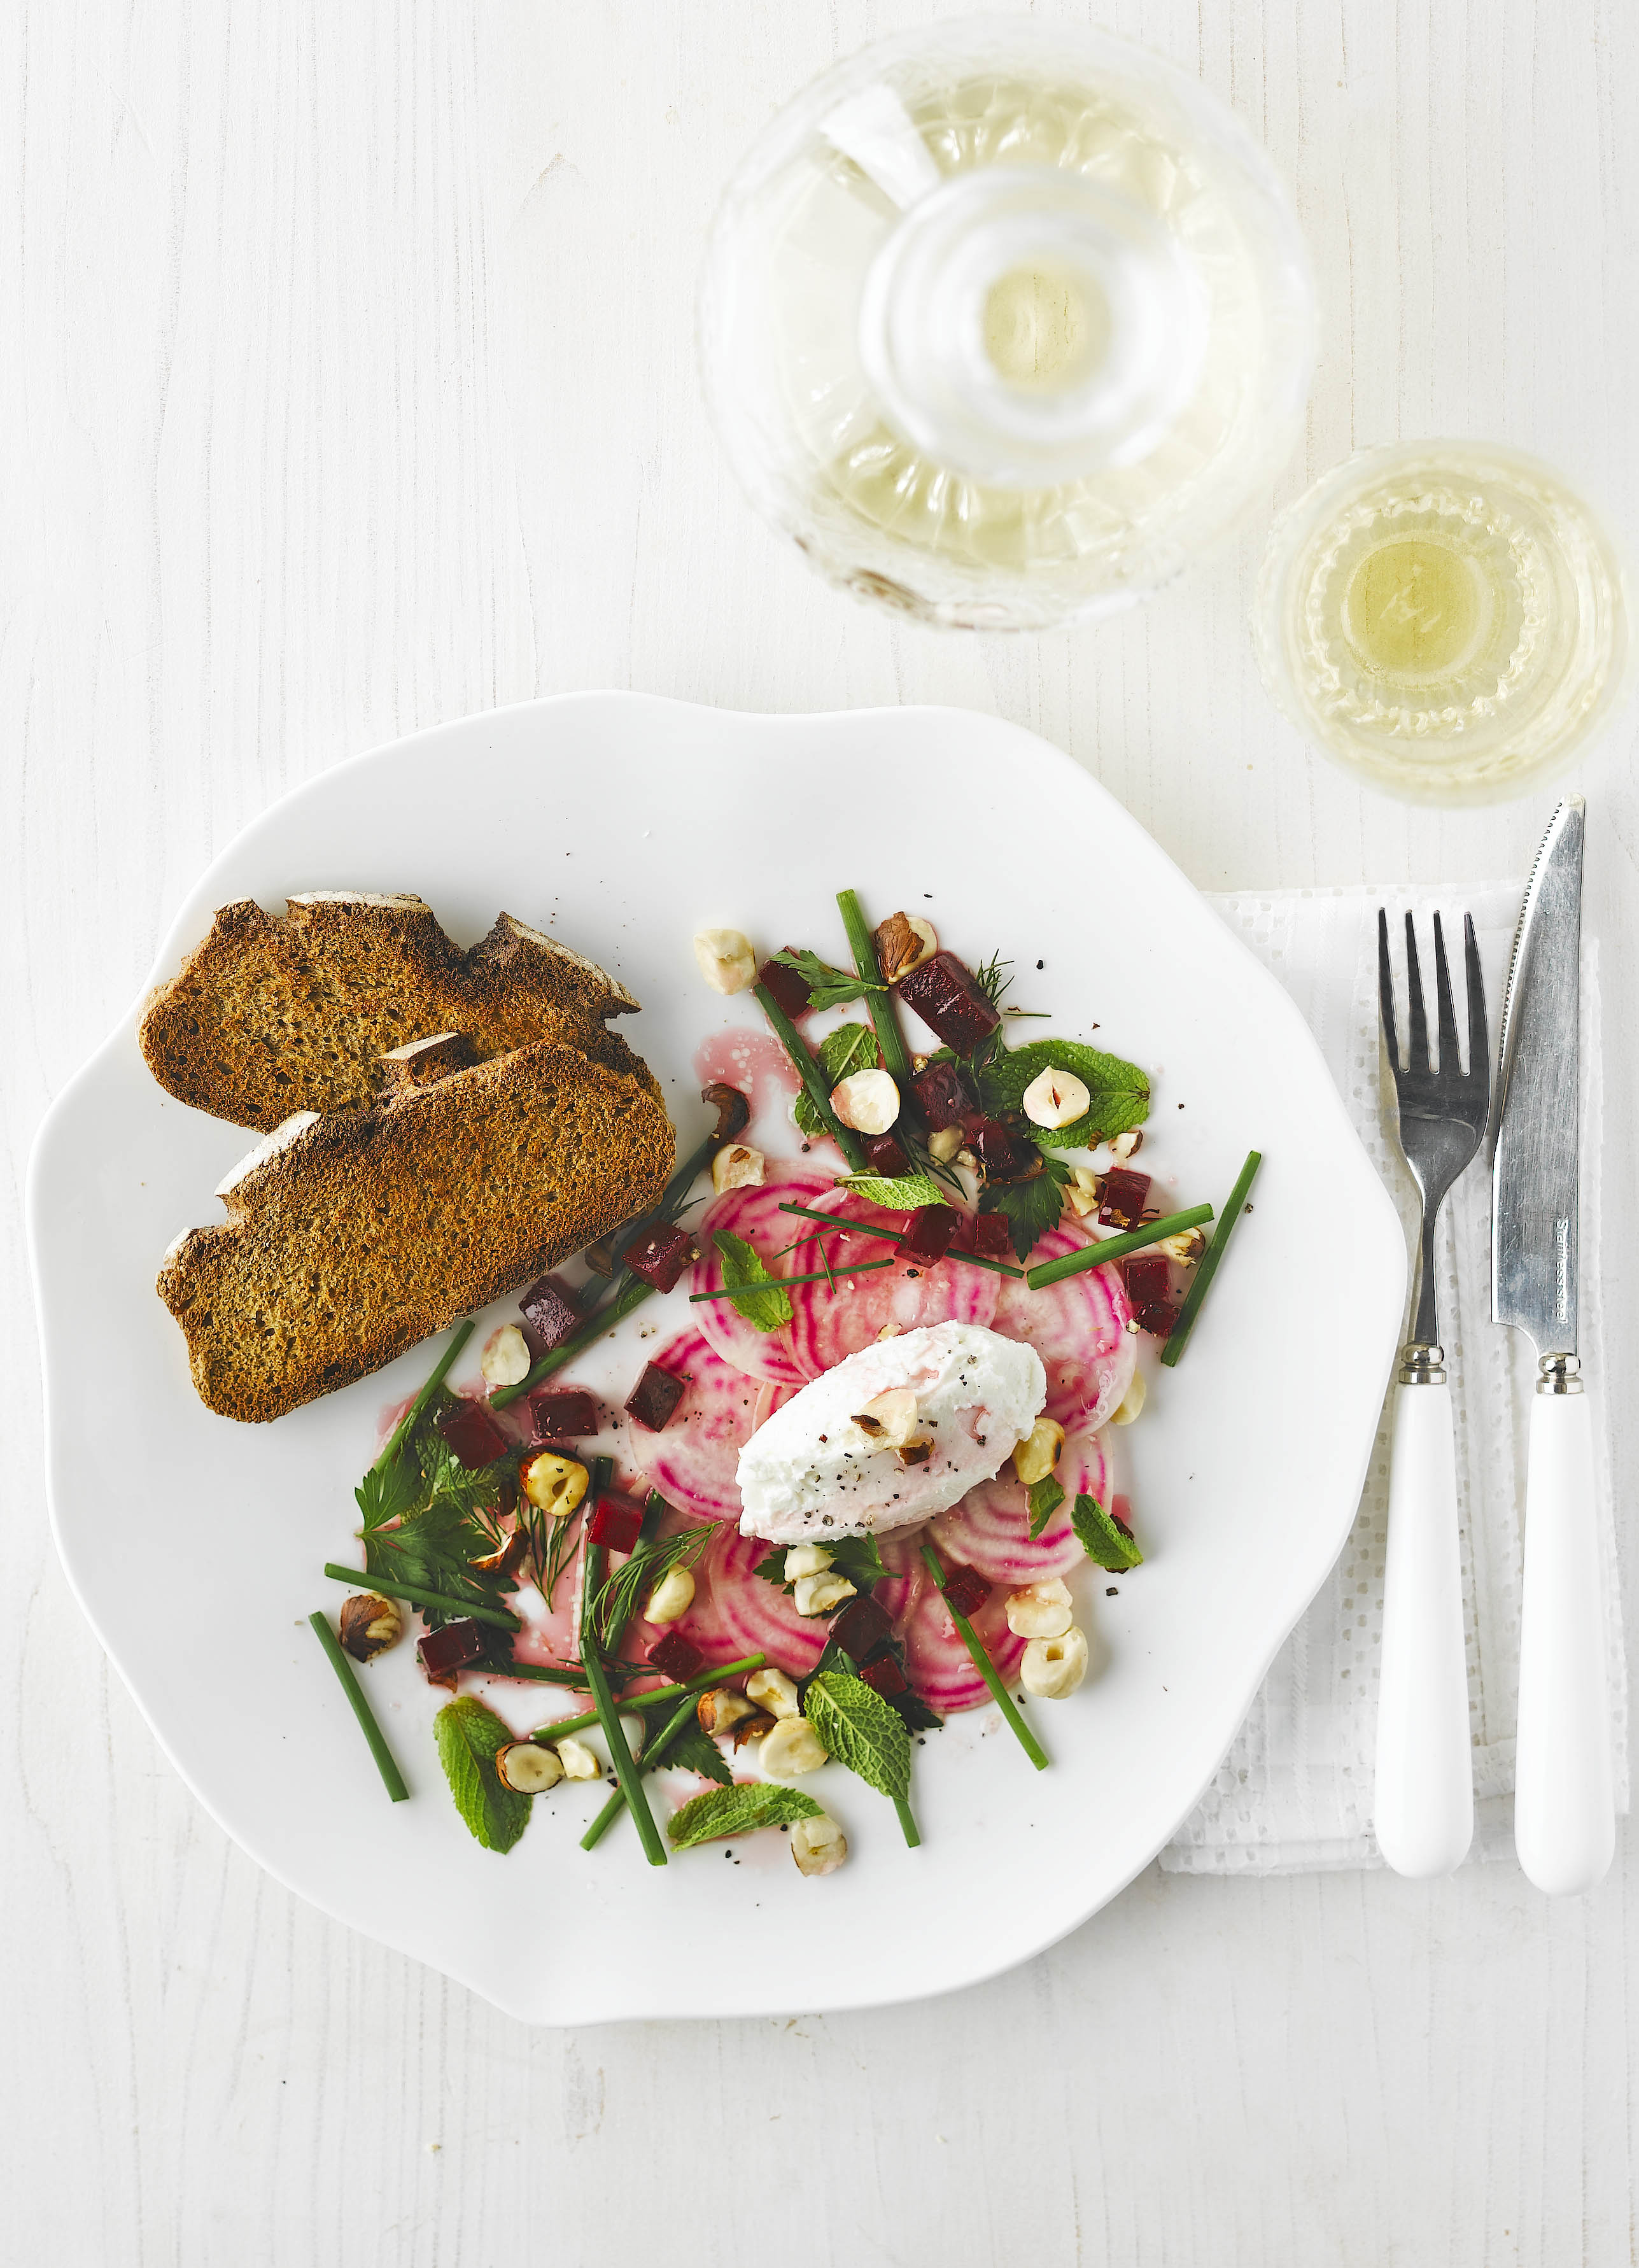 Whipped Goat's Cheese Recipe with Beetroot and Herb Salad served on a white plate